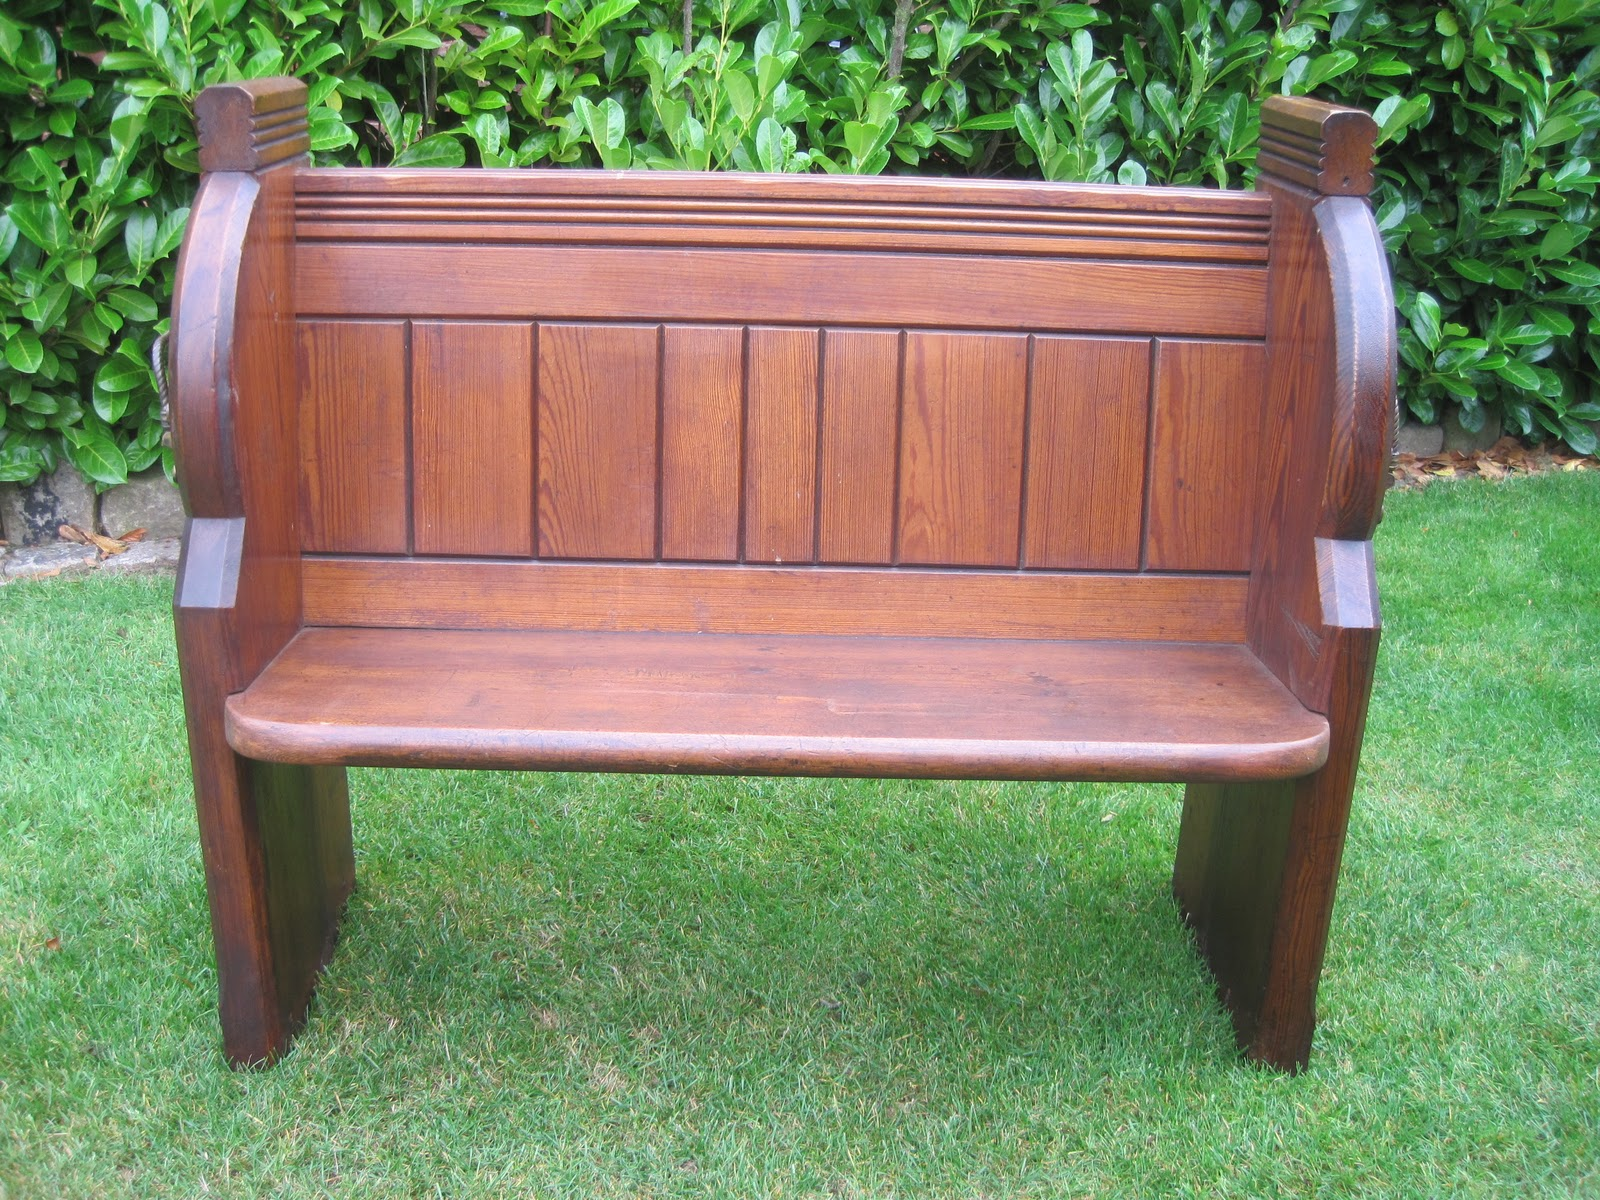 Church Benches For Sale Uk 28 Images Church Benches For Sale Uk Salvoweb Church Pews Church